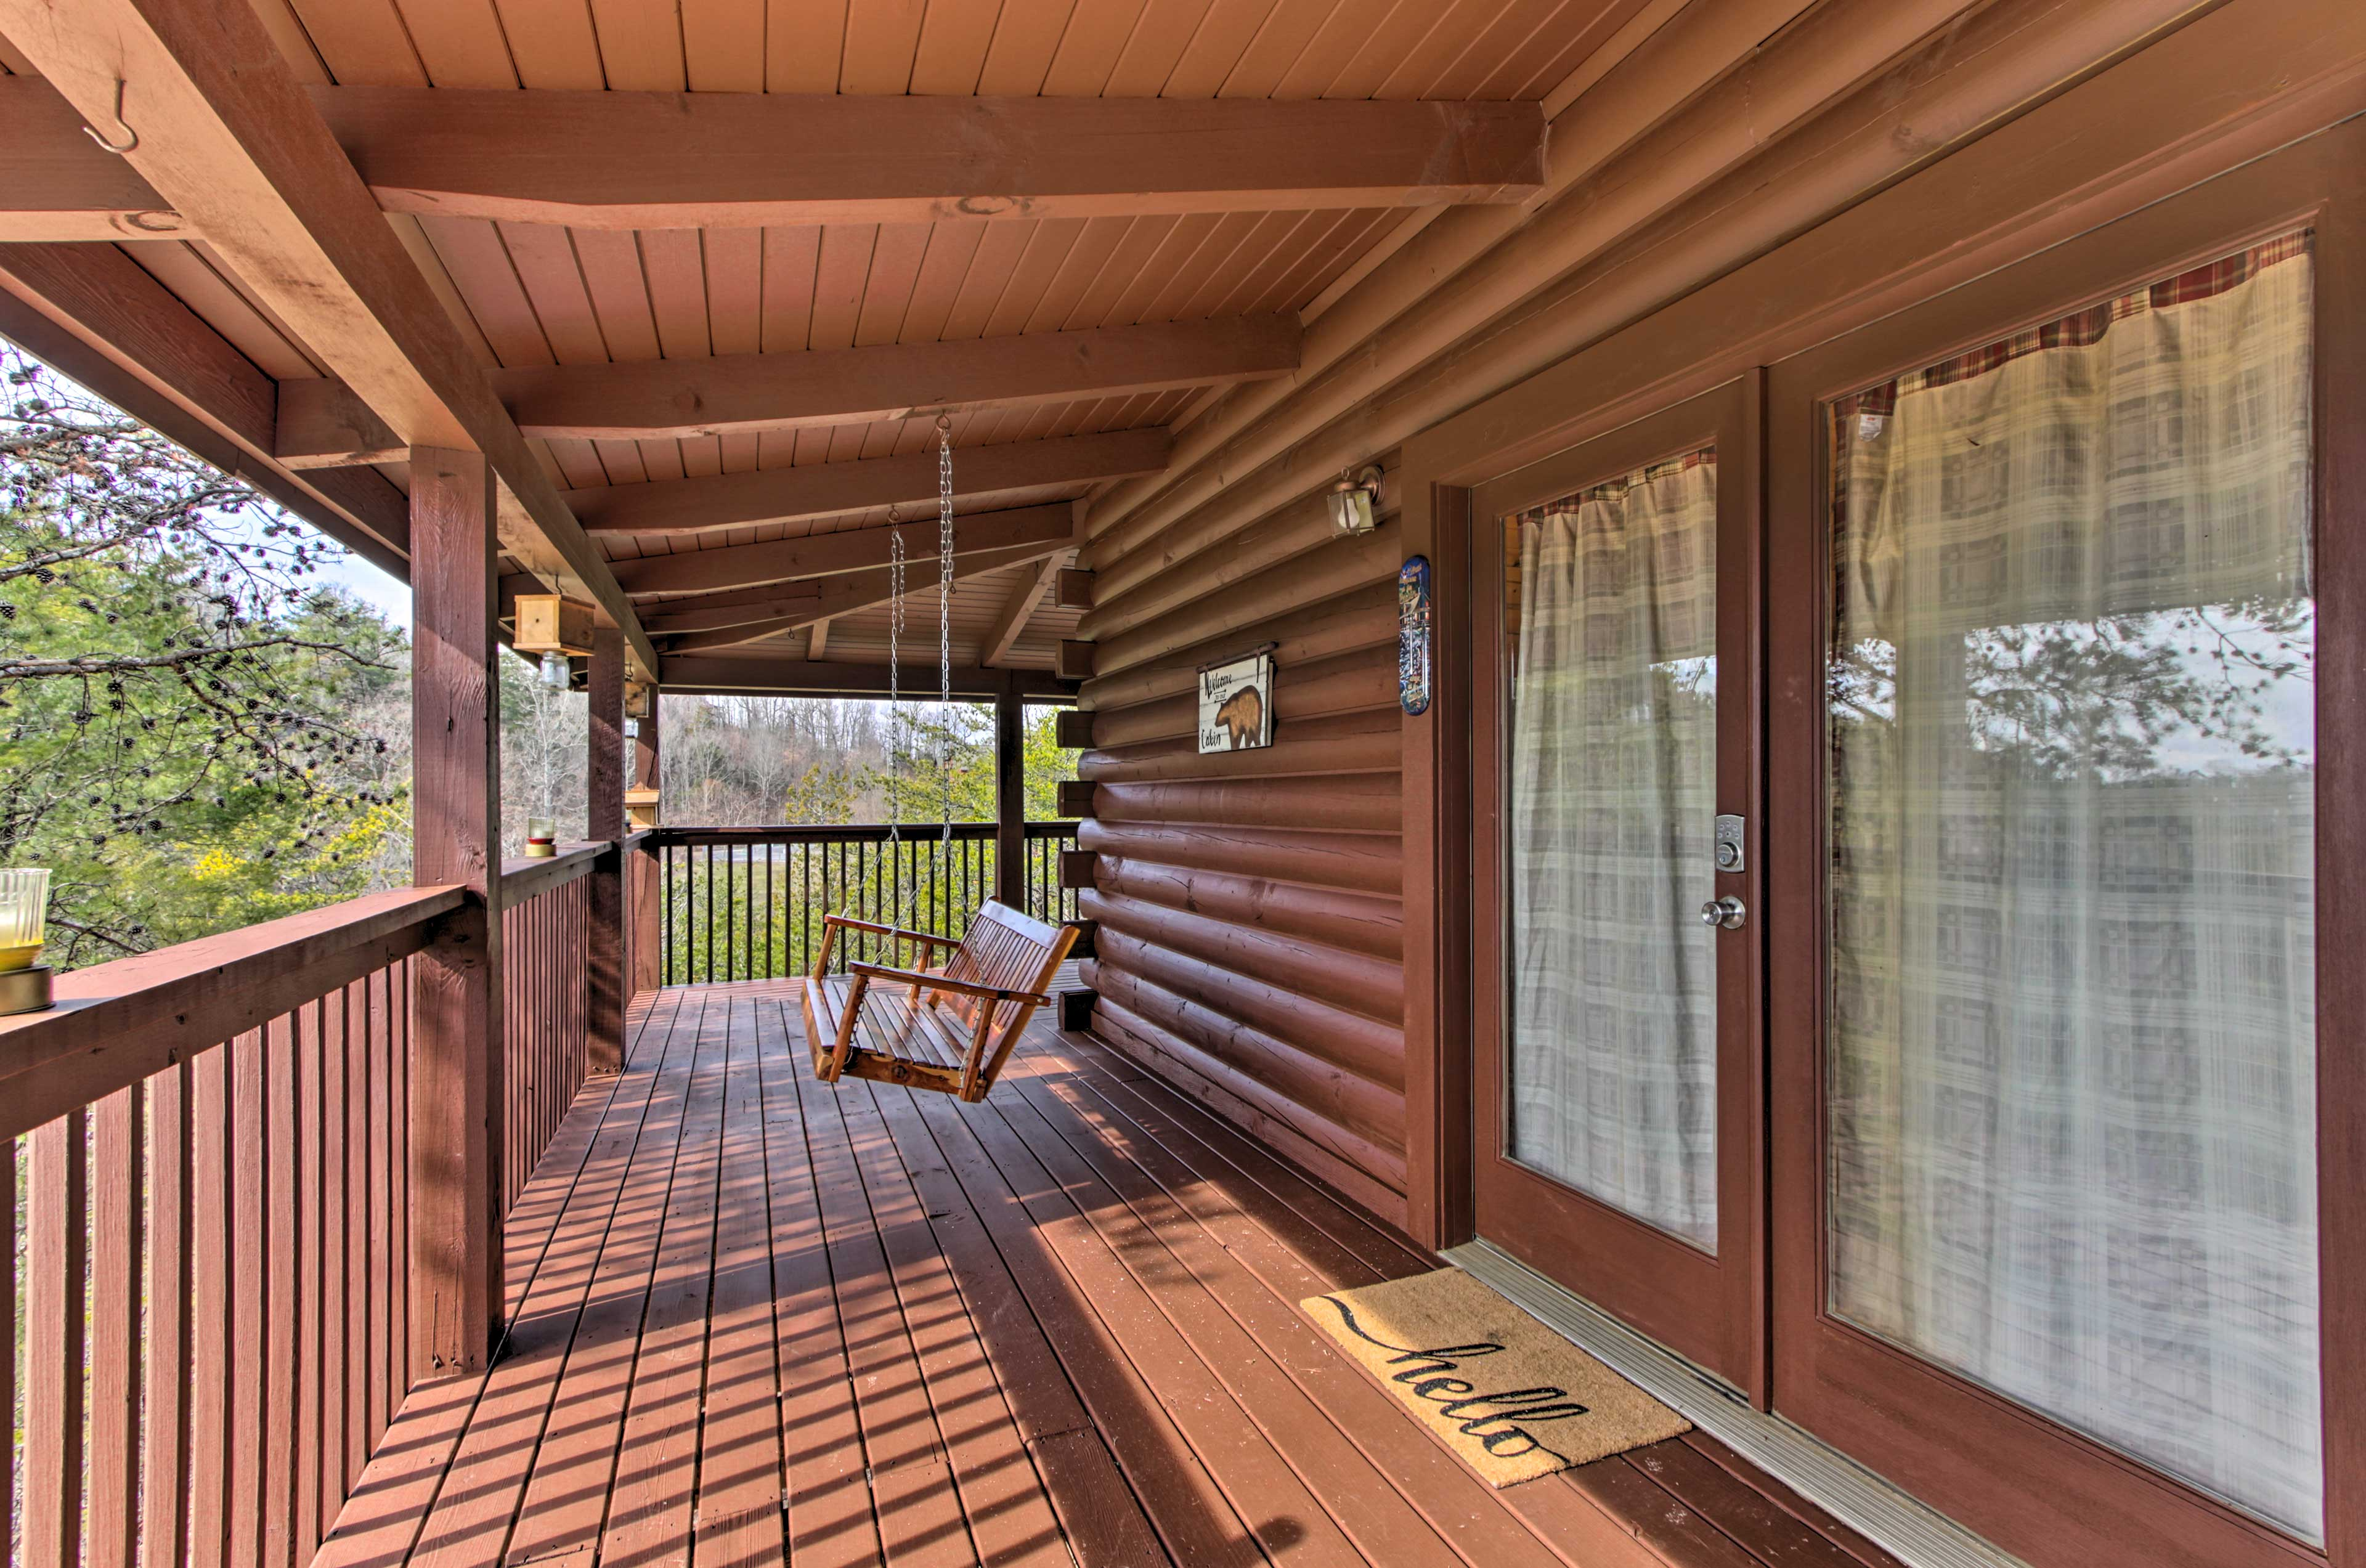 The front porch features a swing perfect for lazy afternoons.